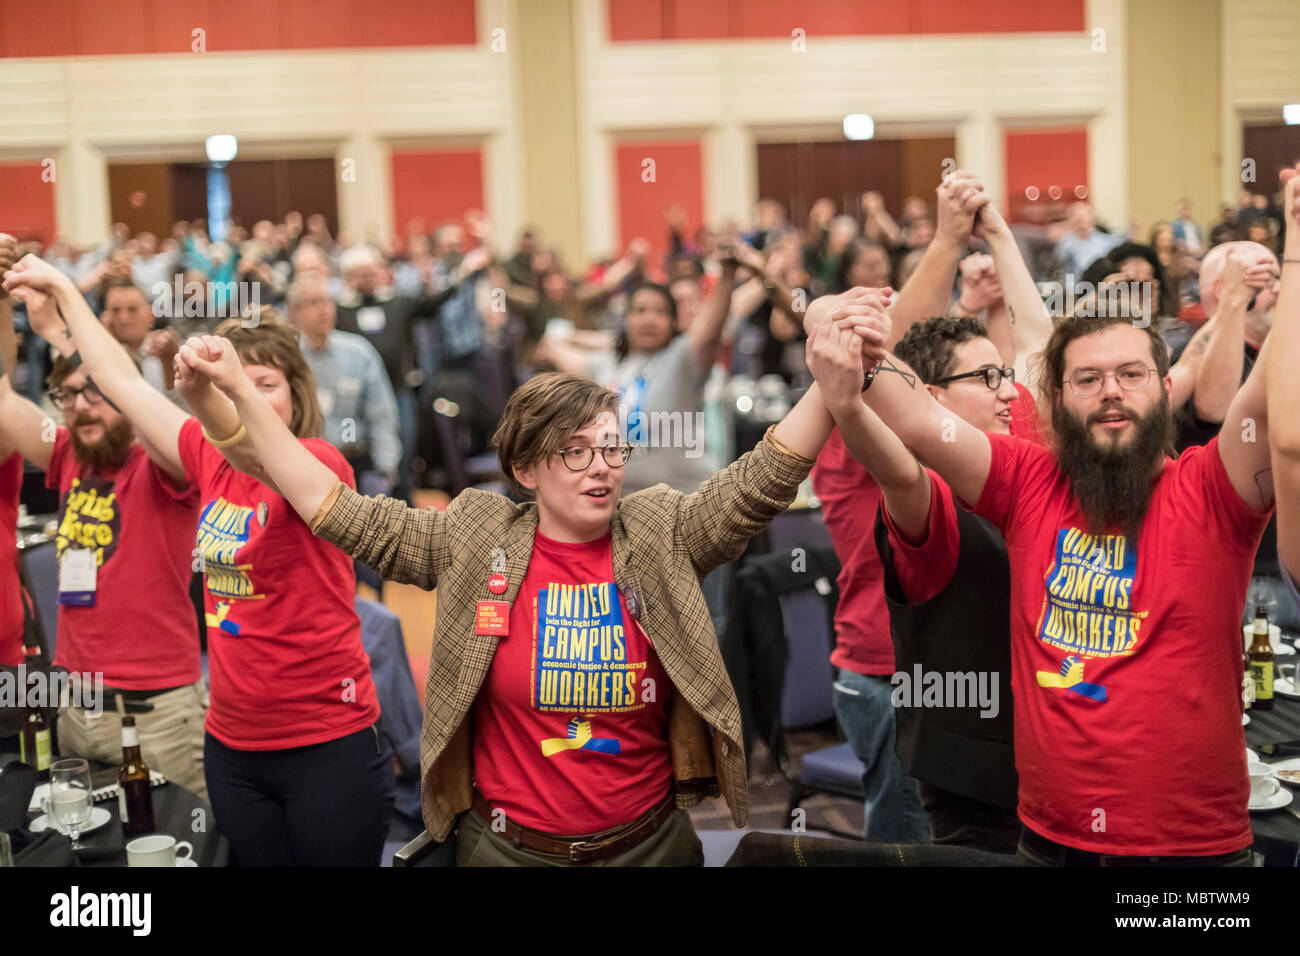 Chicago, Illinois - Members of the United Campus Workers at the University of Tennessee joined three thousand rank and file union activists from across the United States and beyond at the biannual Labor Notes conference to discuss how to revitalize the labor movement. - Stock Image